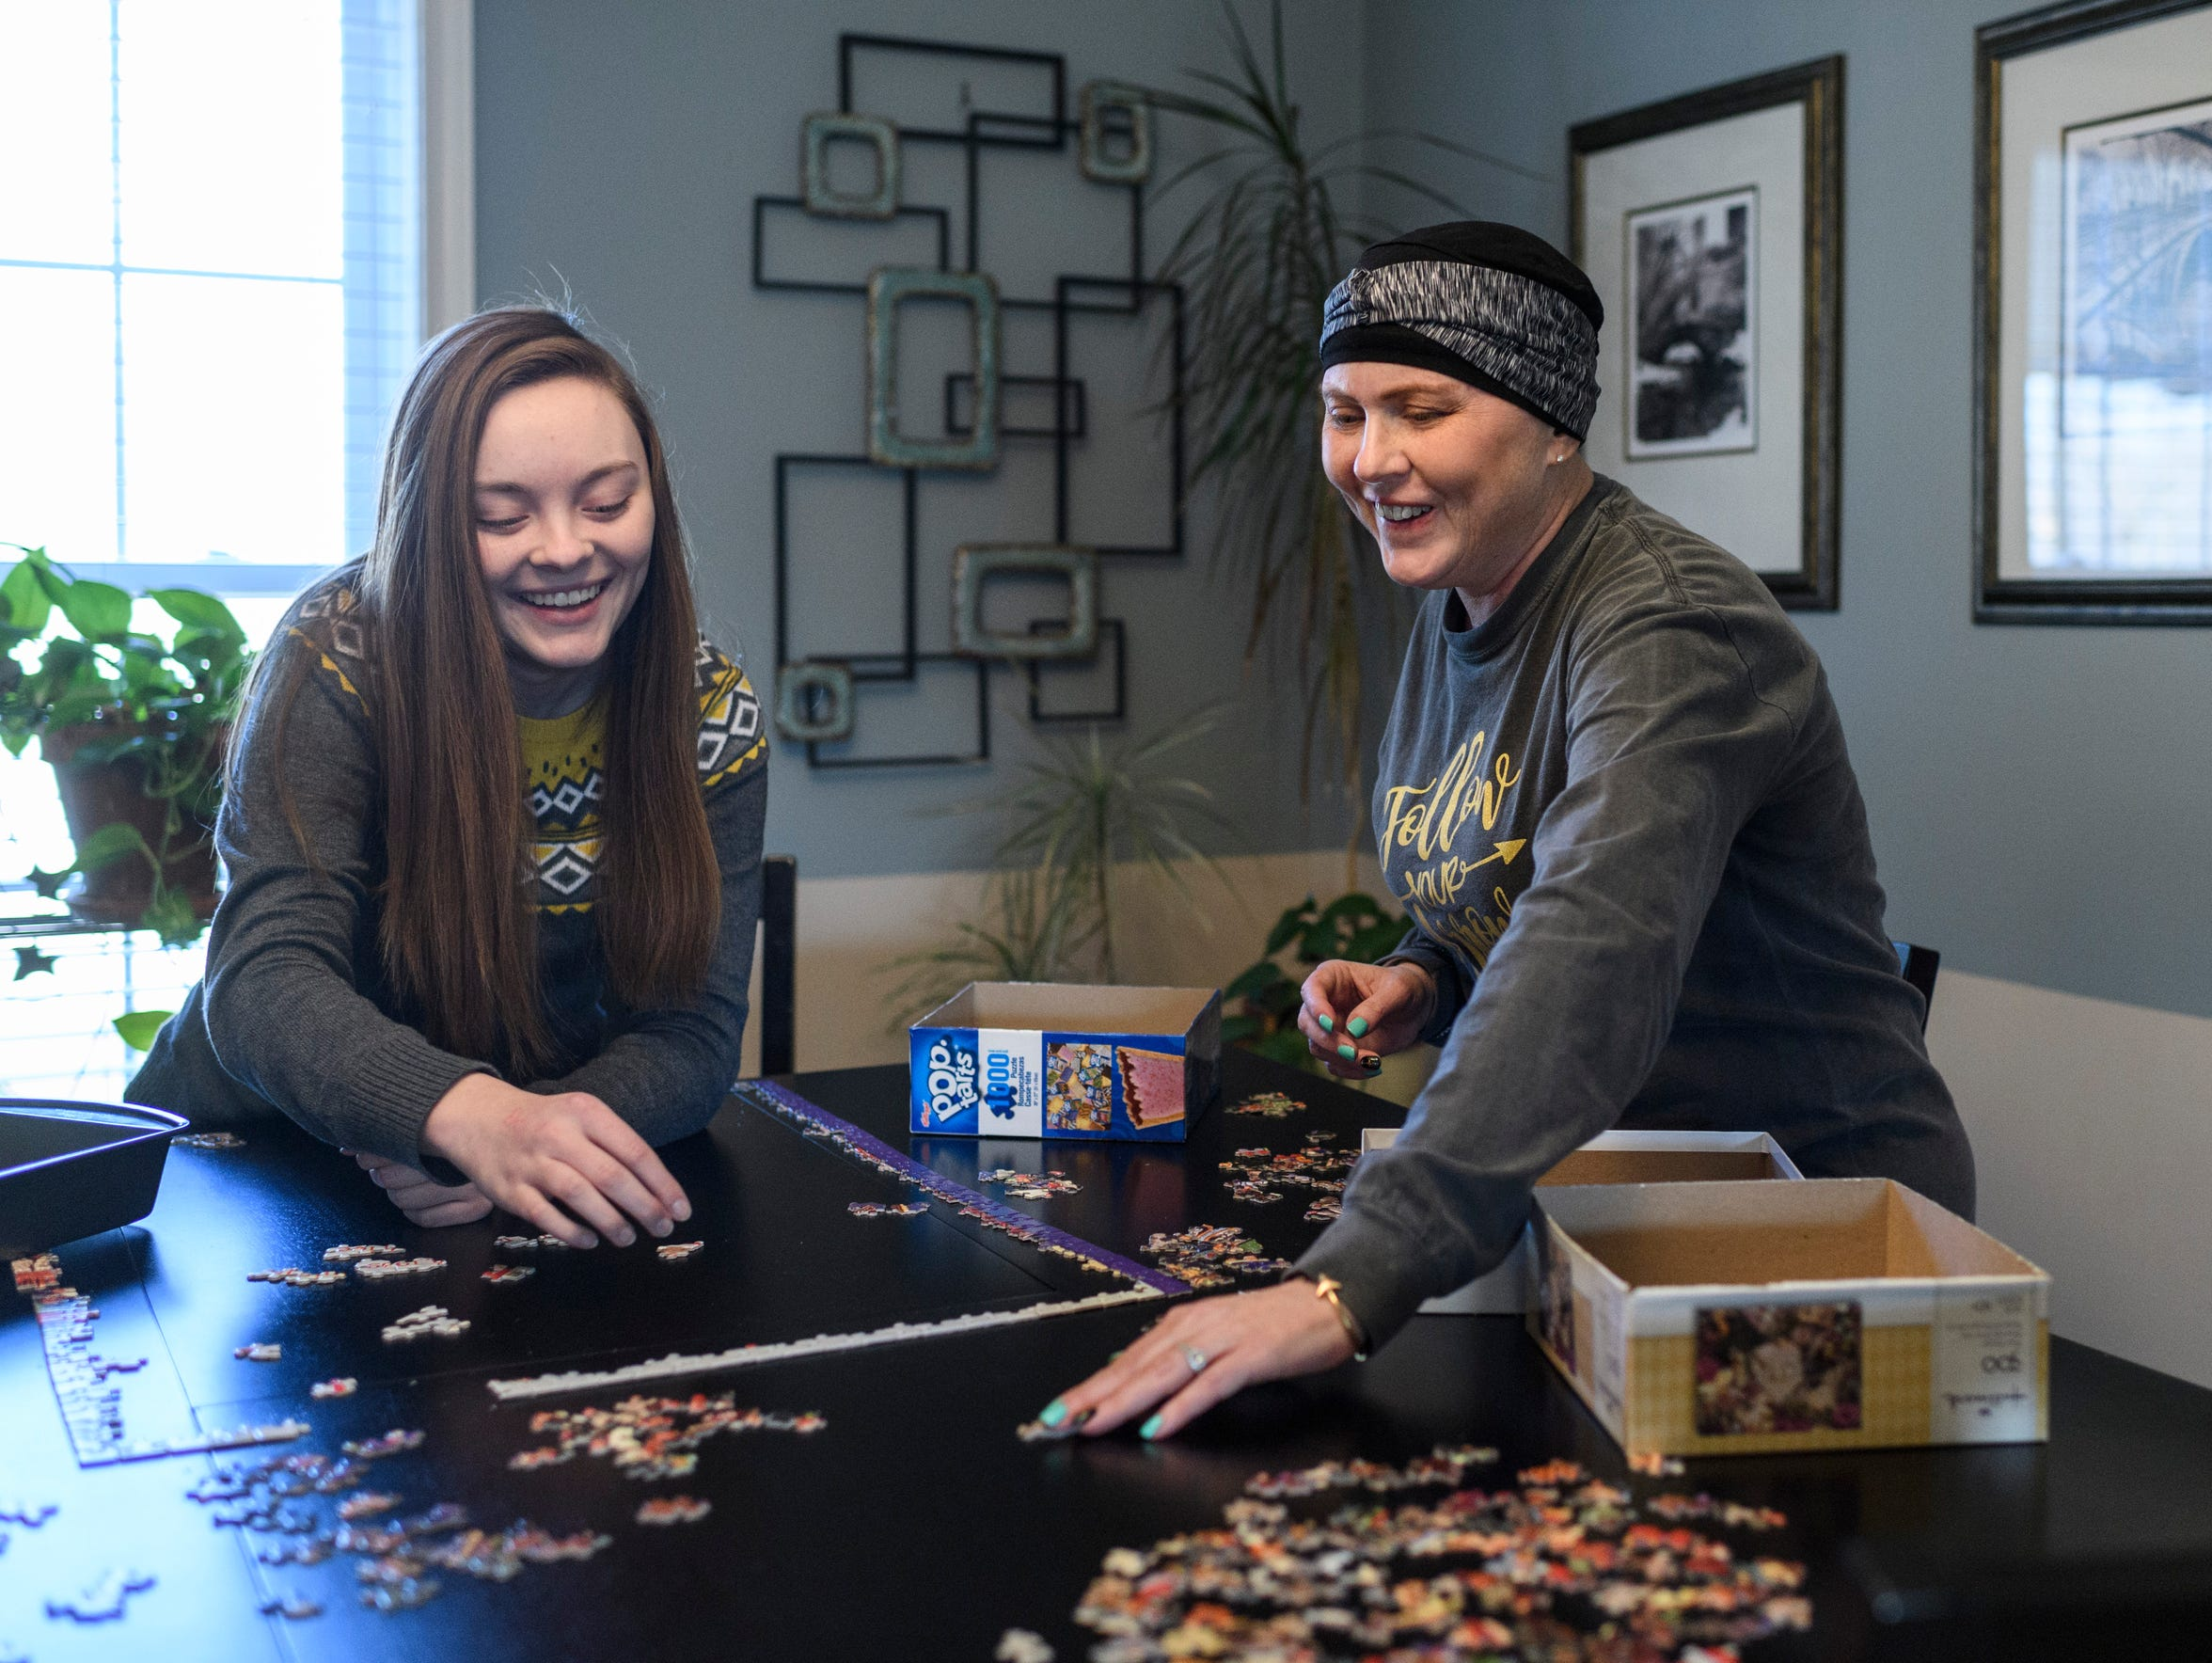 Grace and Amy share a laugh as they work on a puzzle